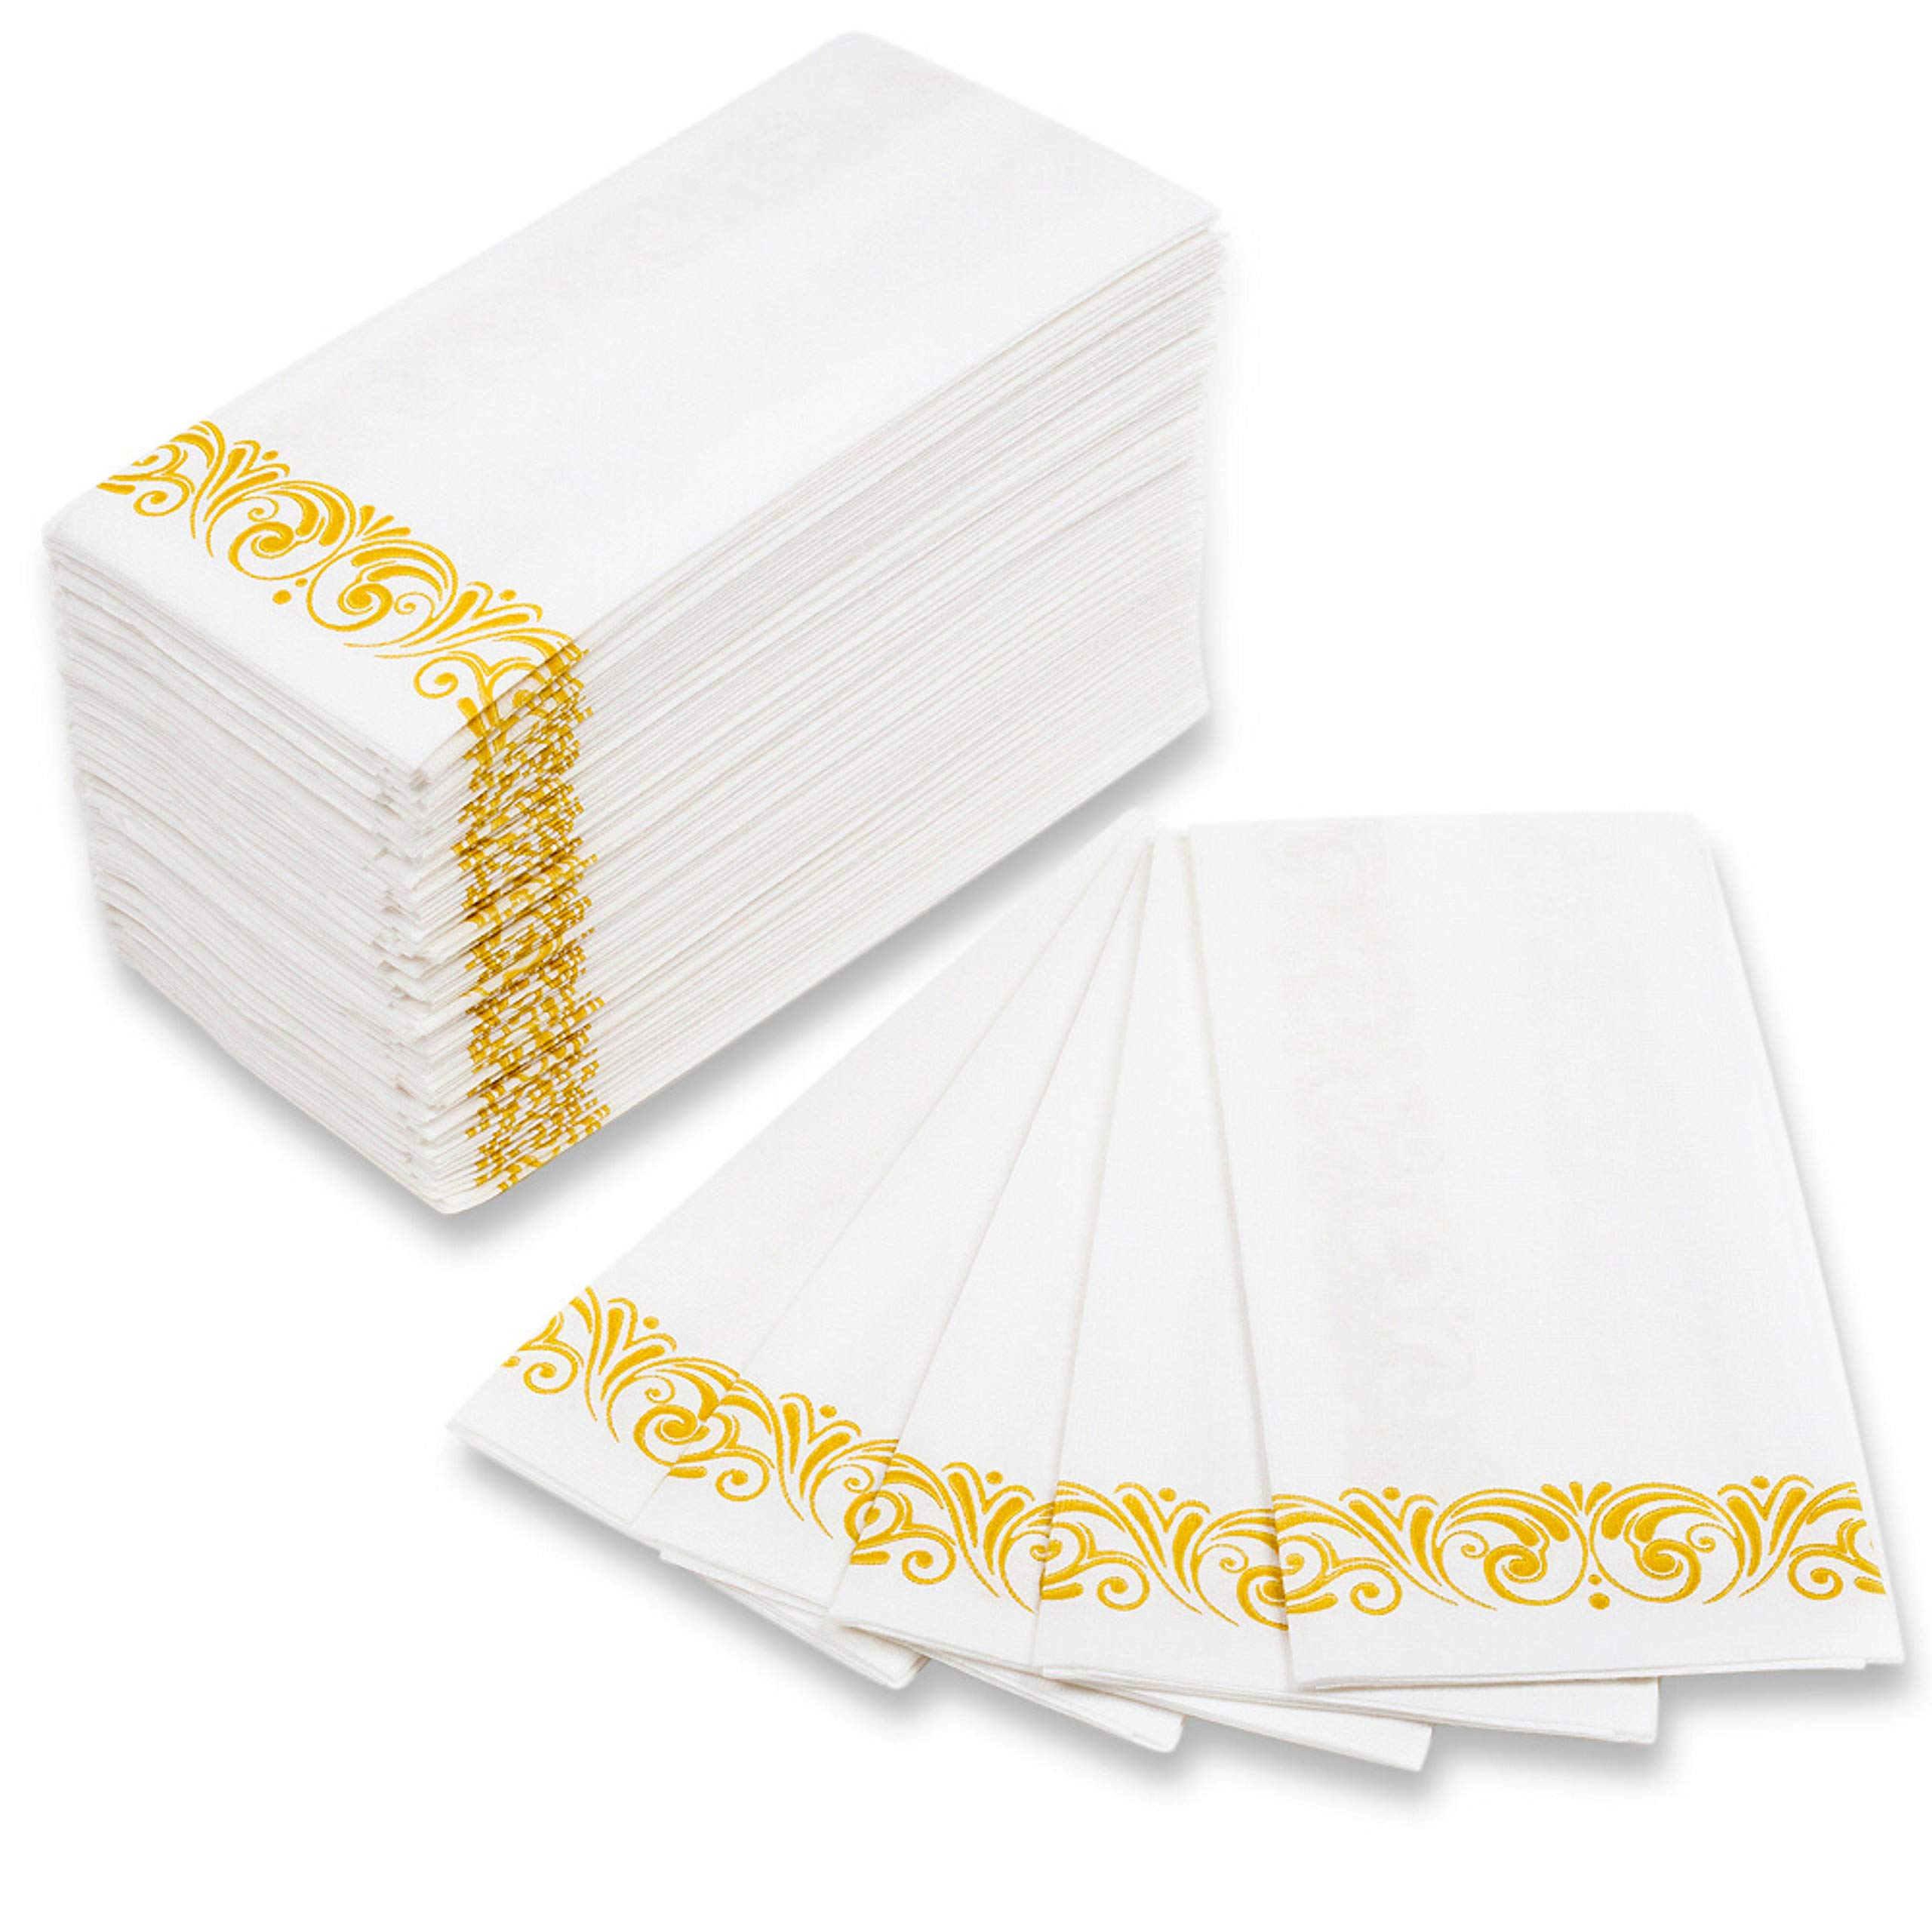 MOCKO Disposable Hand Napkins 17x12'' 100 Pack | Soft & Absorbent Towels With Gold Floral Decoration | Air-Laid Linen Paper | For Wedding, Bathroom Guests, Kitchen, Birthday Parties, Powder Room & More by MOCKO